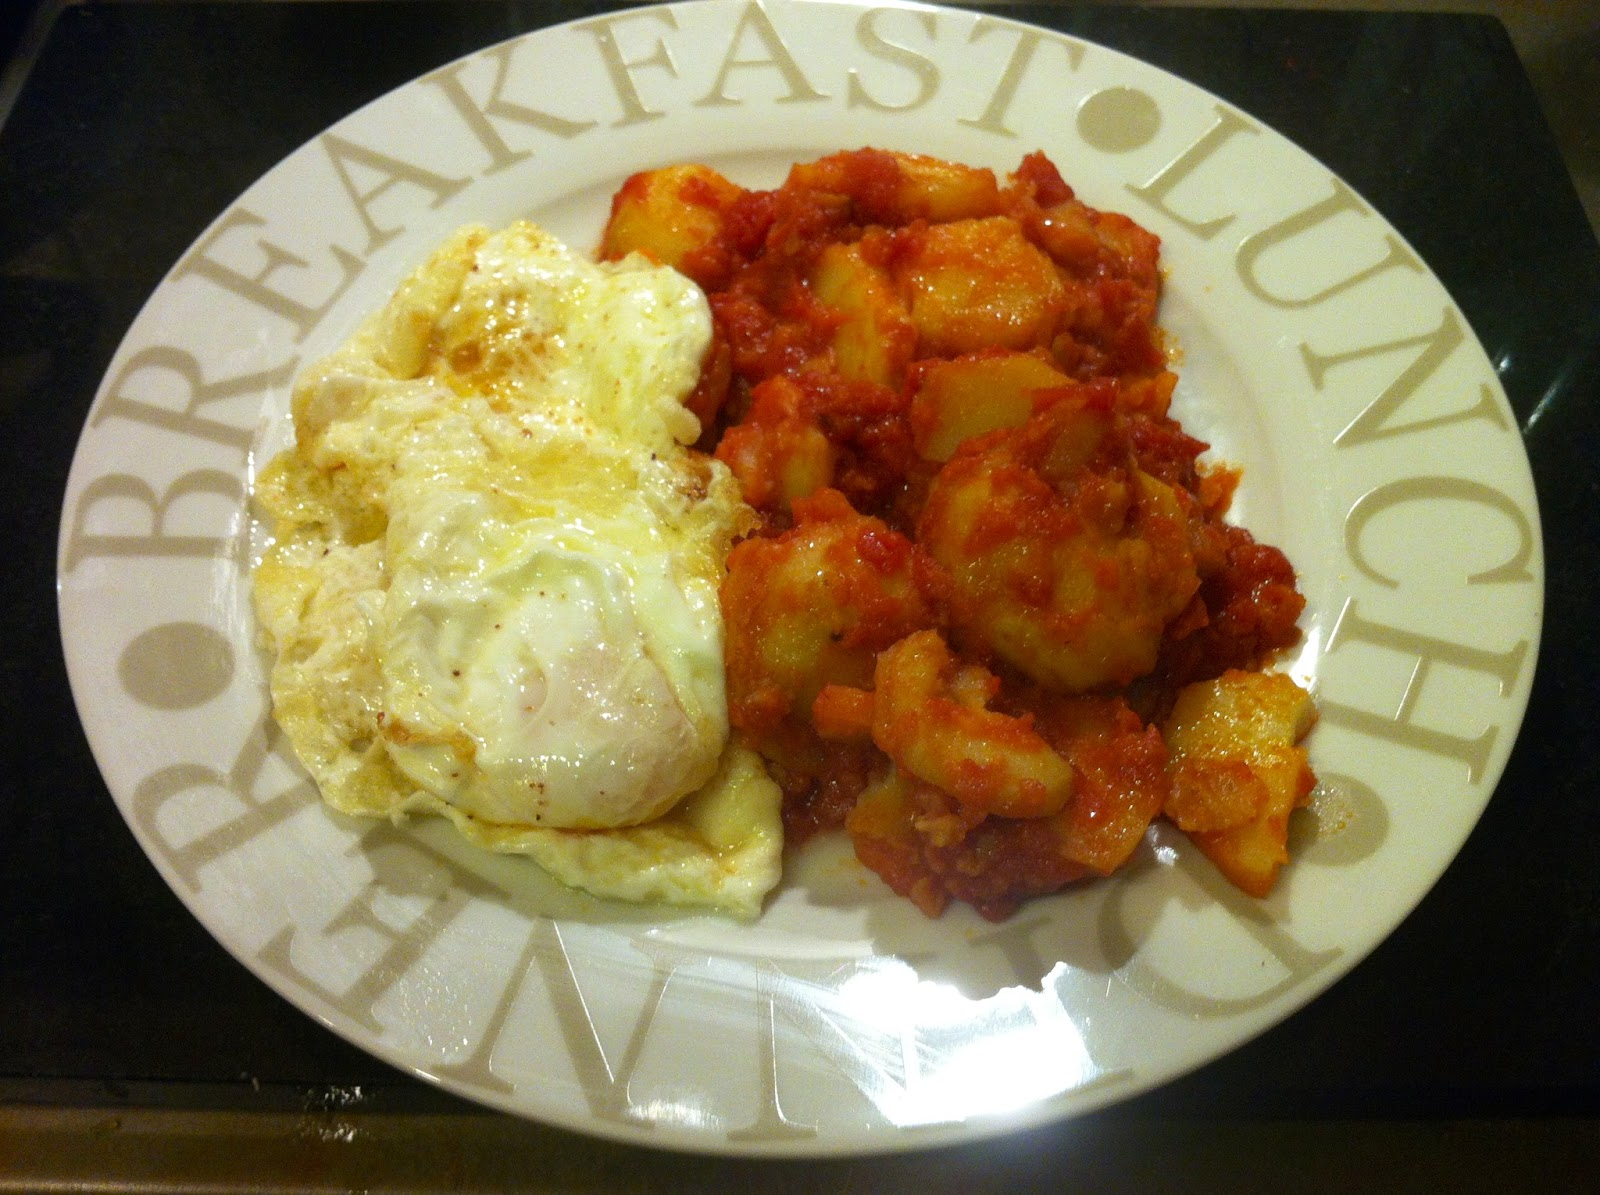 Don victors homemade spanish cuisine 19 fried potatoes cooked in you can fry a couple of eggs make sure that the yolks of fried eggs remain liquid so that so can dip bread on it and it will be the perfect match forumfinder Gallery